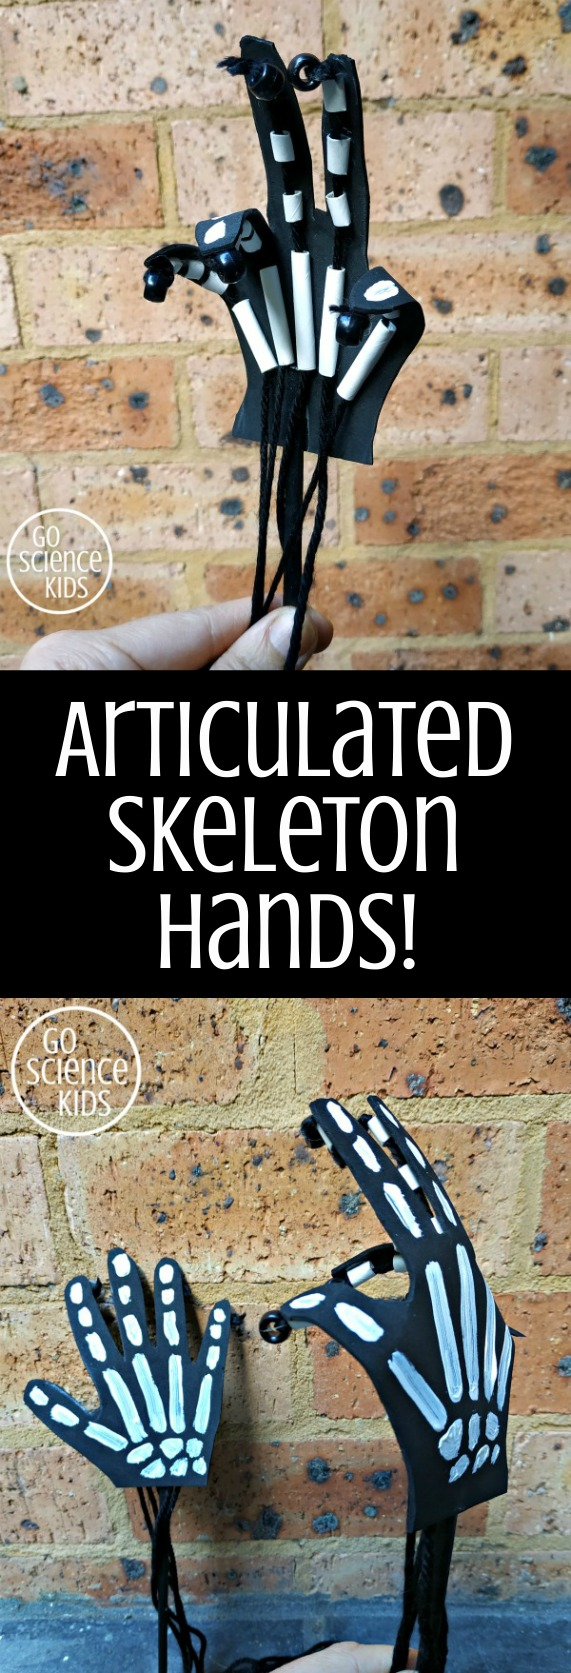 Articulated skeleton hands - fun science craft for kids to make